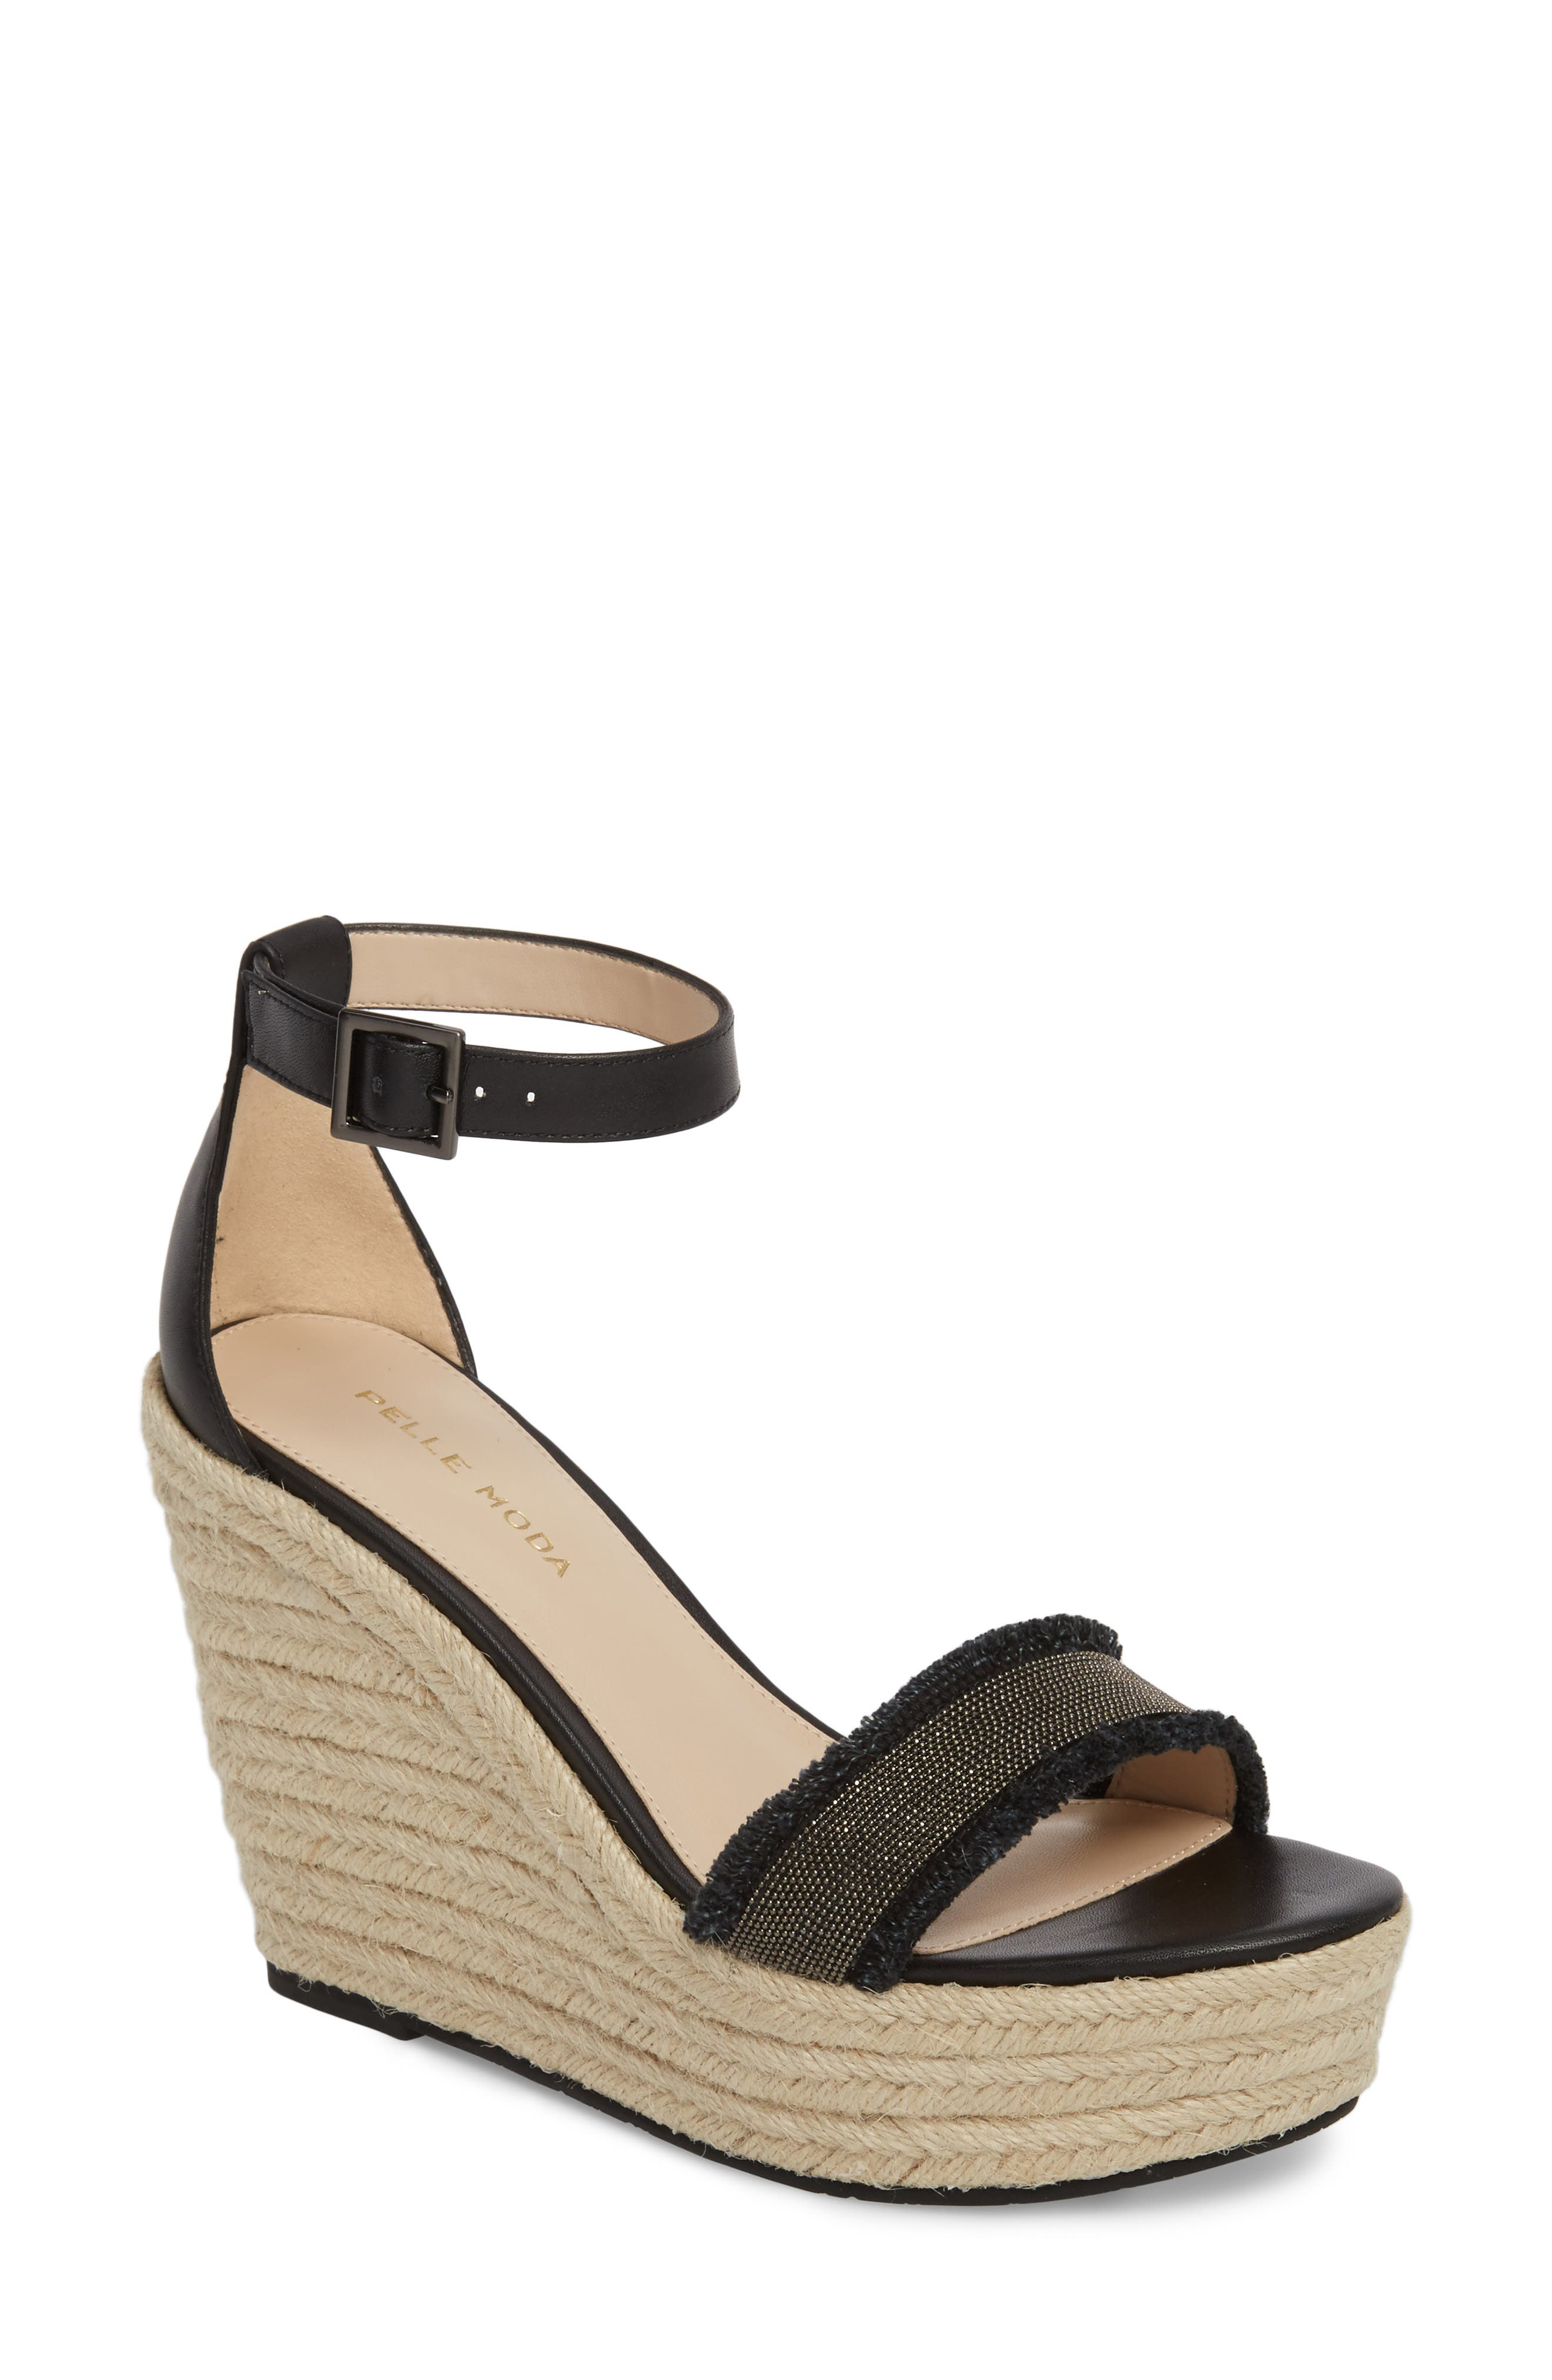 Radley Espadrille Wedge Sandal,                             Main thumbnail 1, color,                             BLACK LEATHER